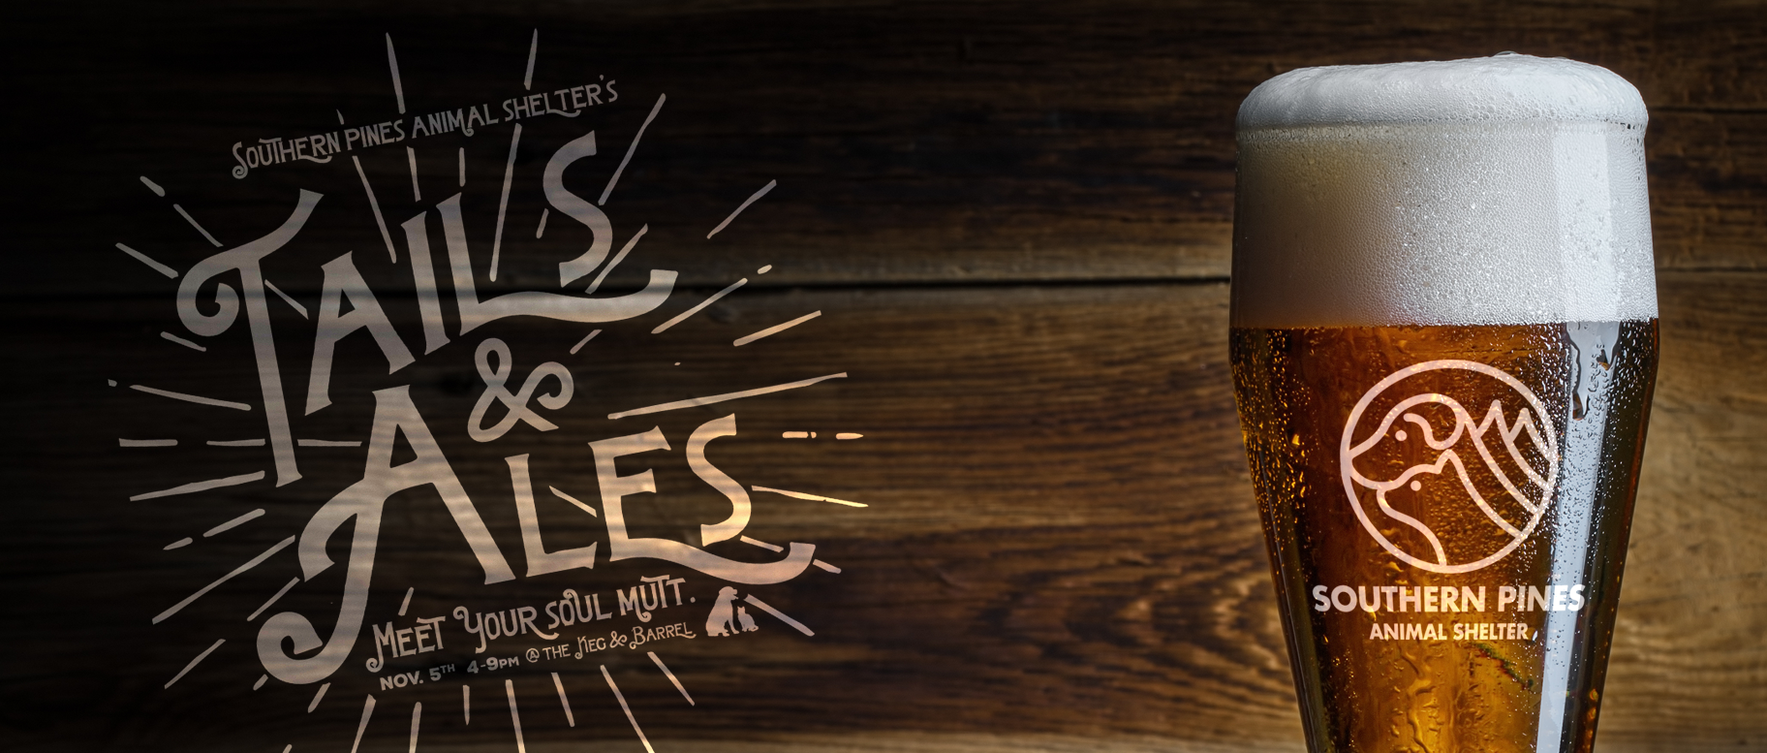 STAFF | Tails & Ales Tickets image